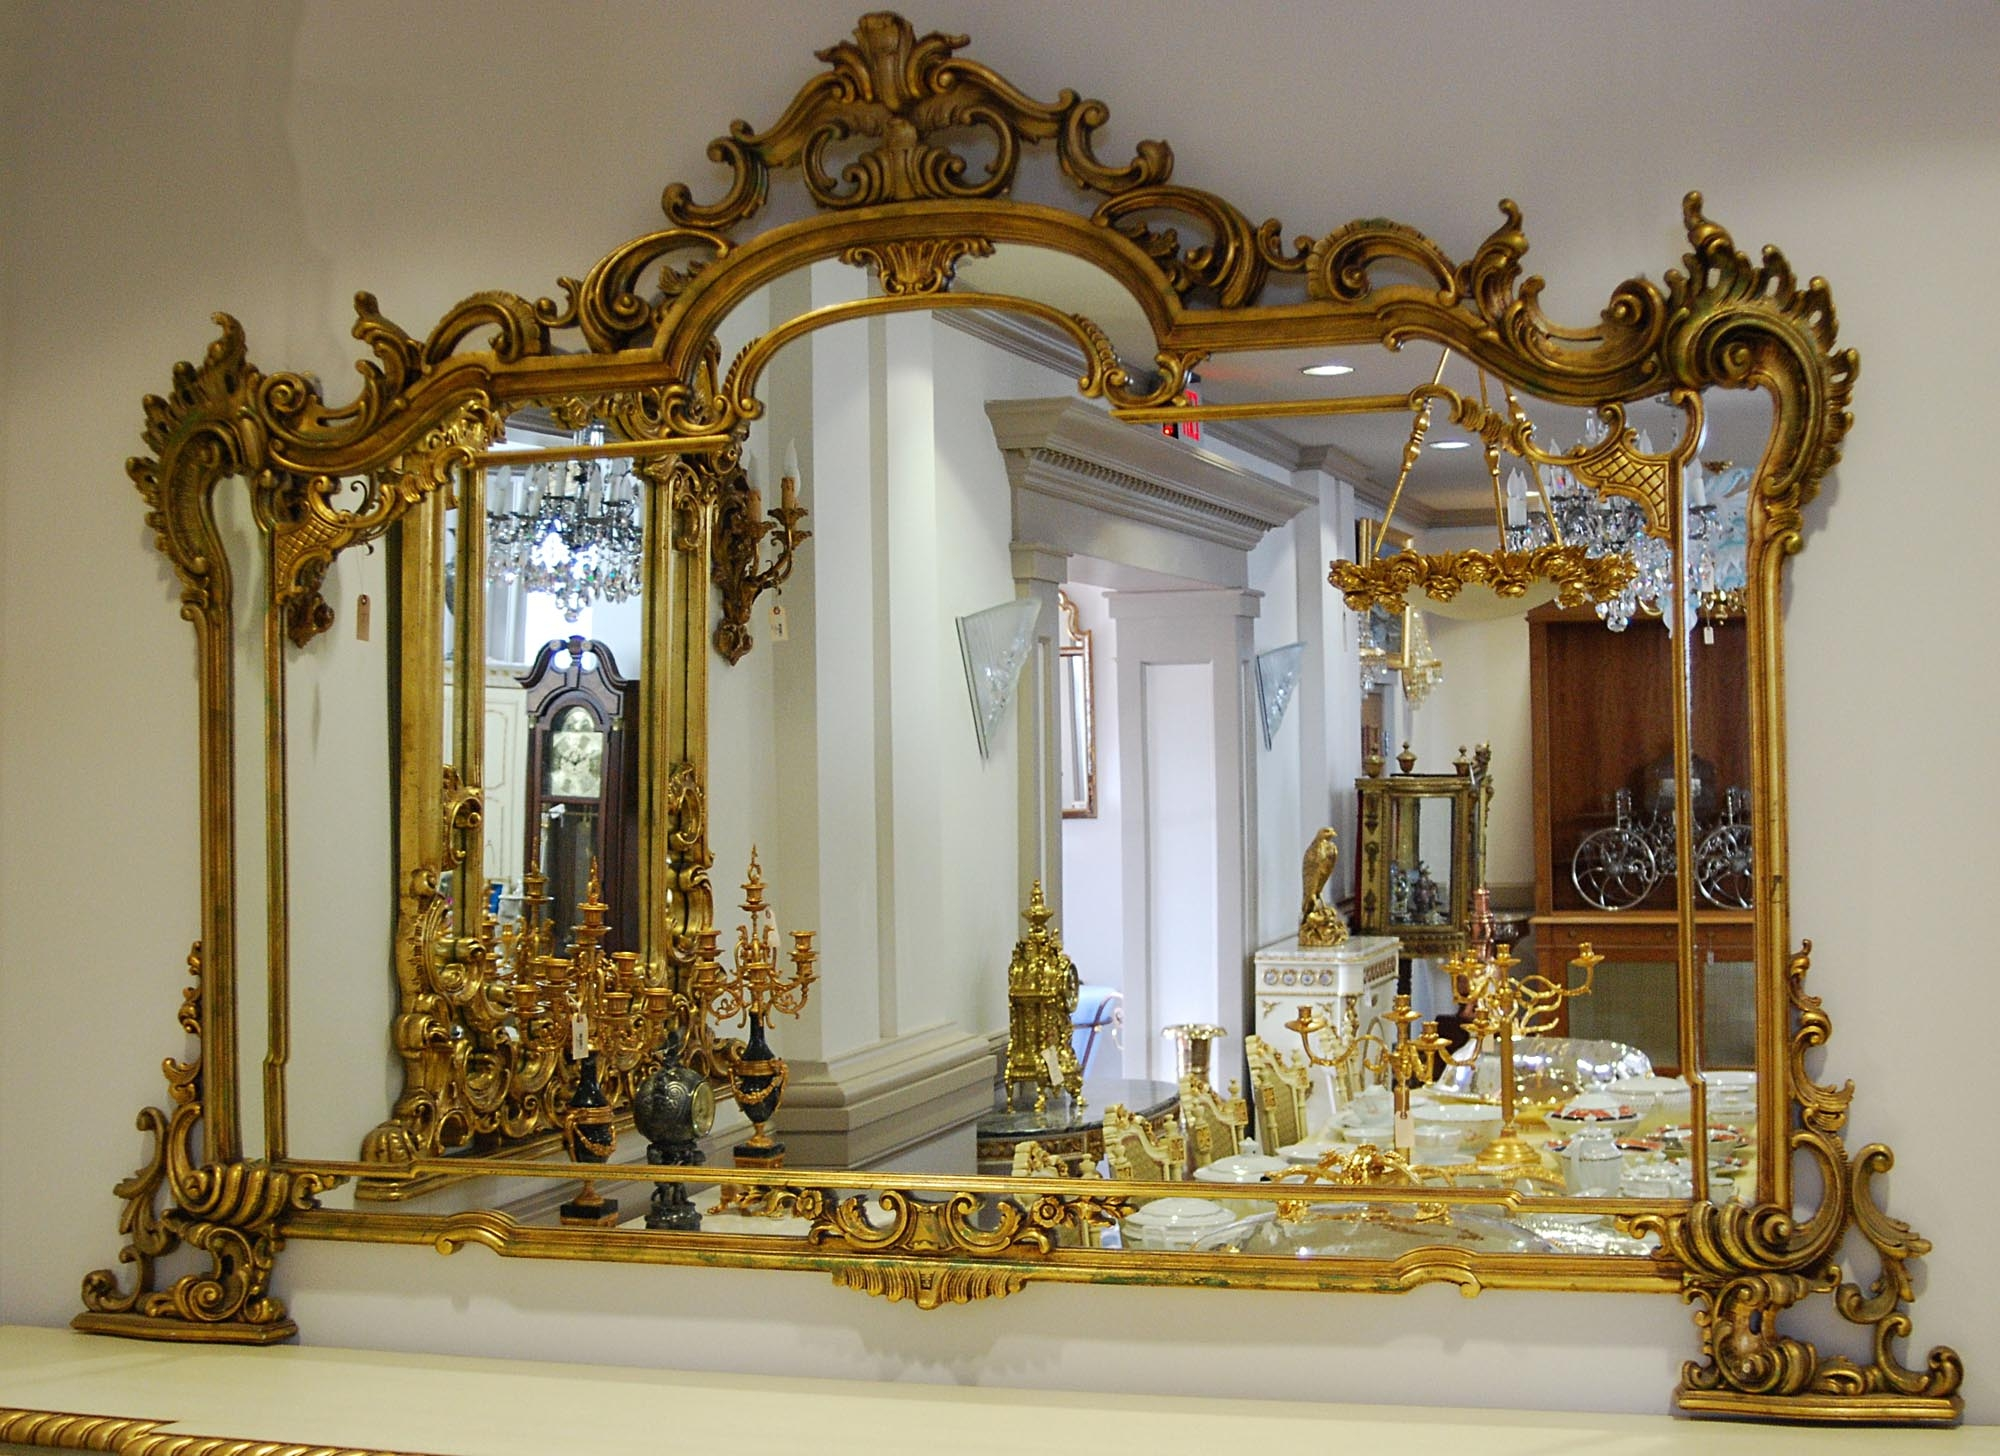 Italian Rococo Mirror Stuff To Buy Pinterest Architecture Throughout Rococo Mirrors Cheap (Image 8 of 15)